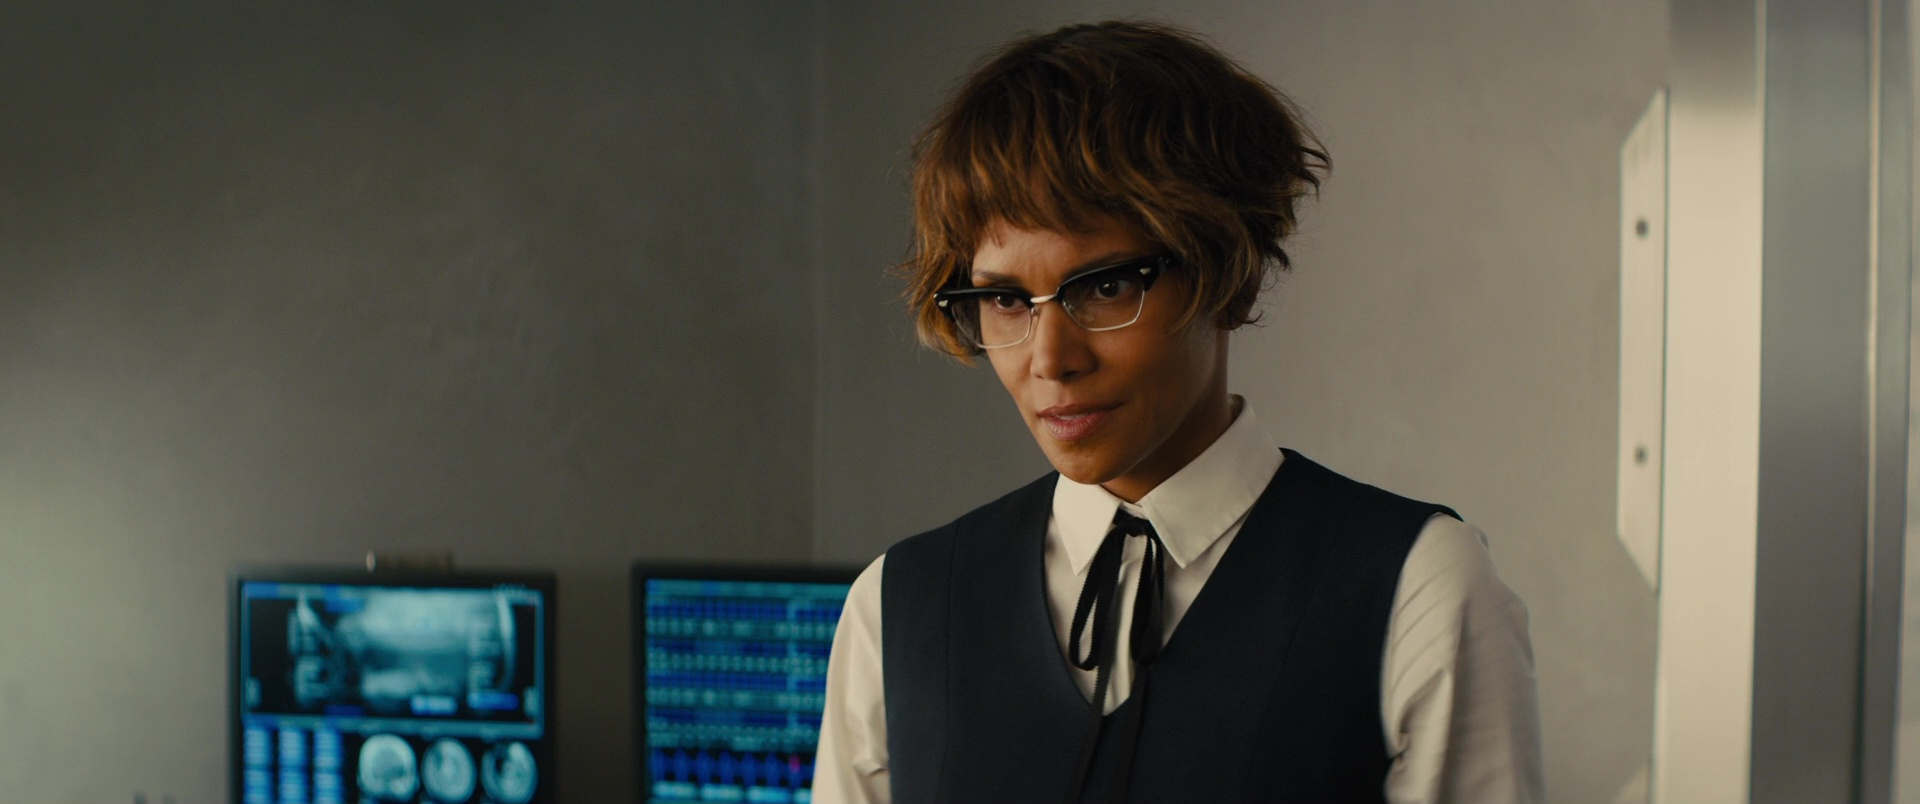 d8630f2d30e Cutler and Gross Cat-Eye Frame Acetate Glasses Worn by Halle Berry in  Kingsman 2  The Golden Circle (2017)